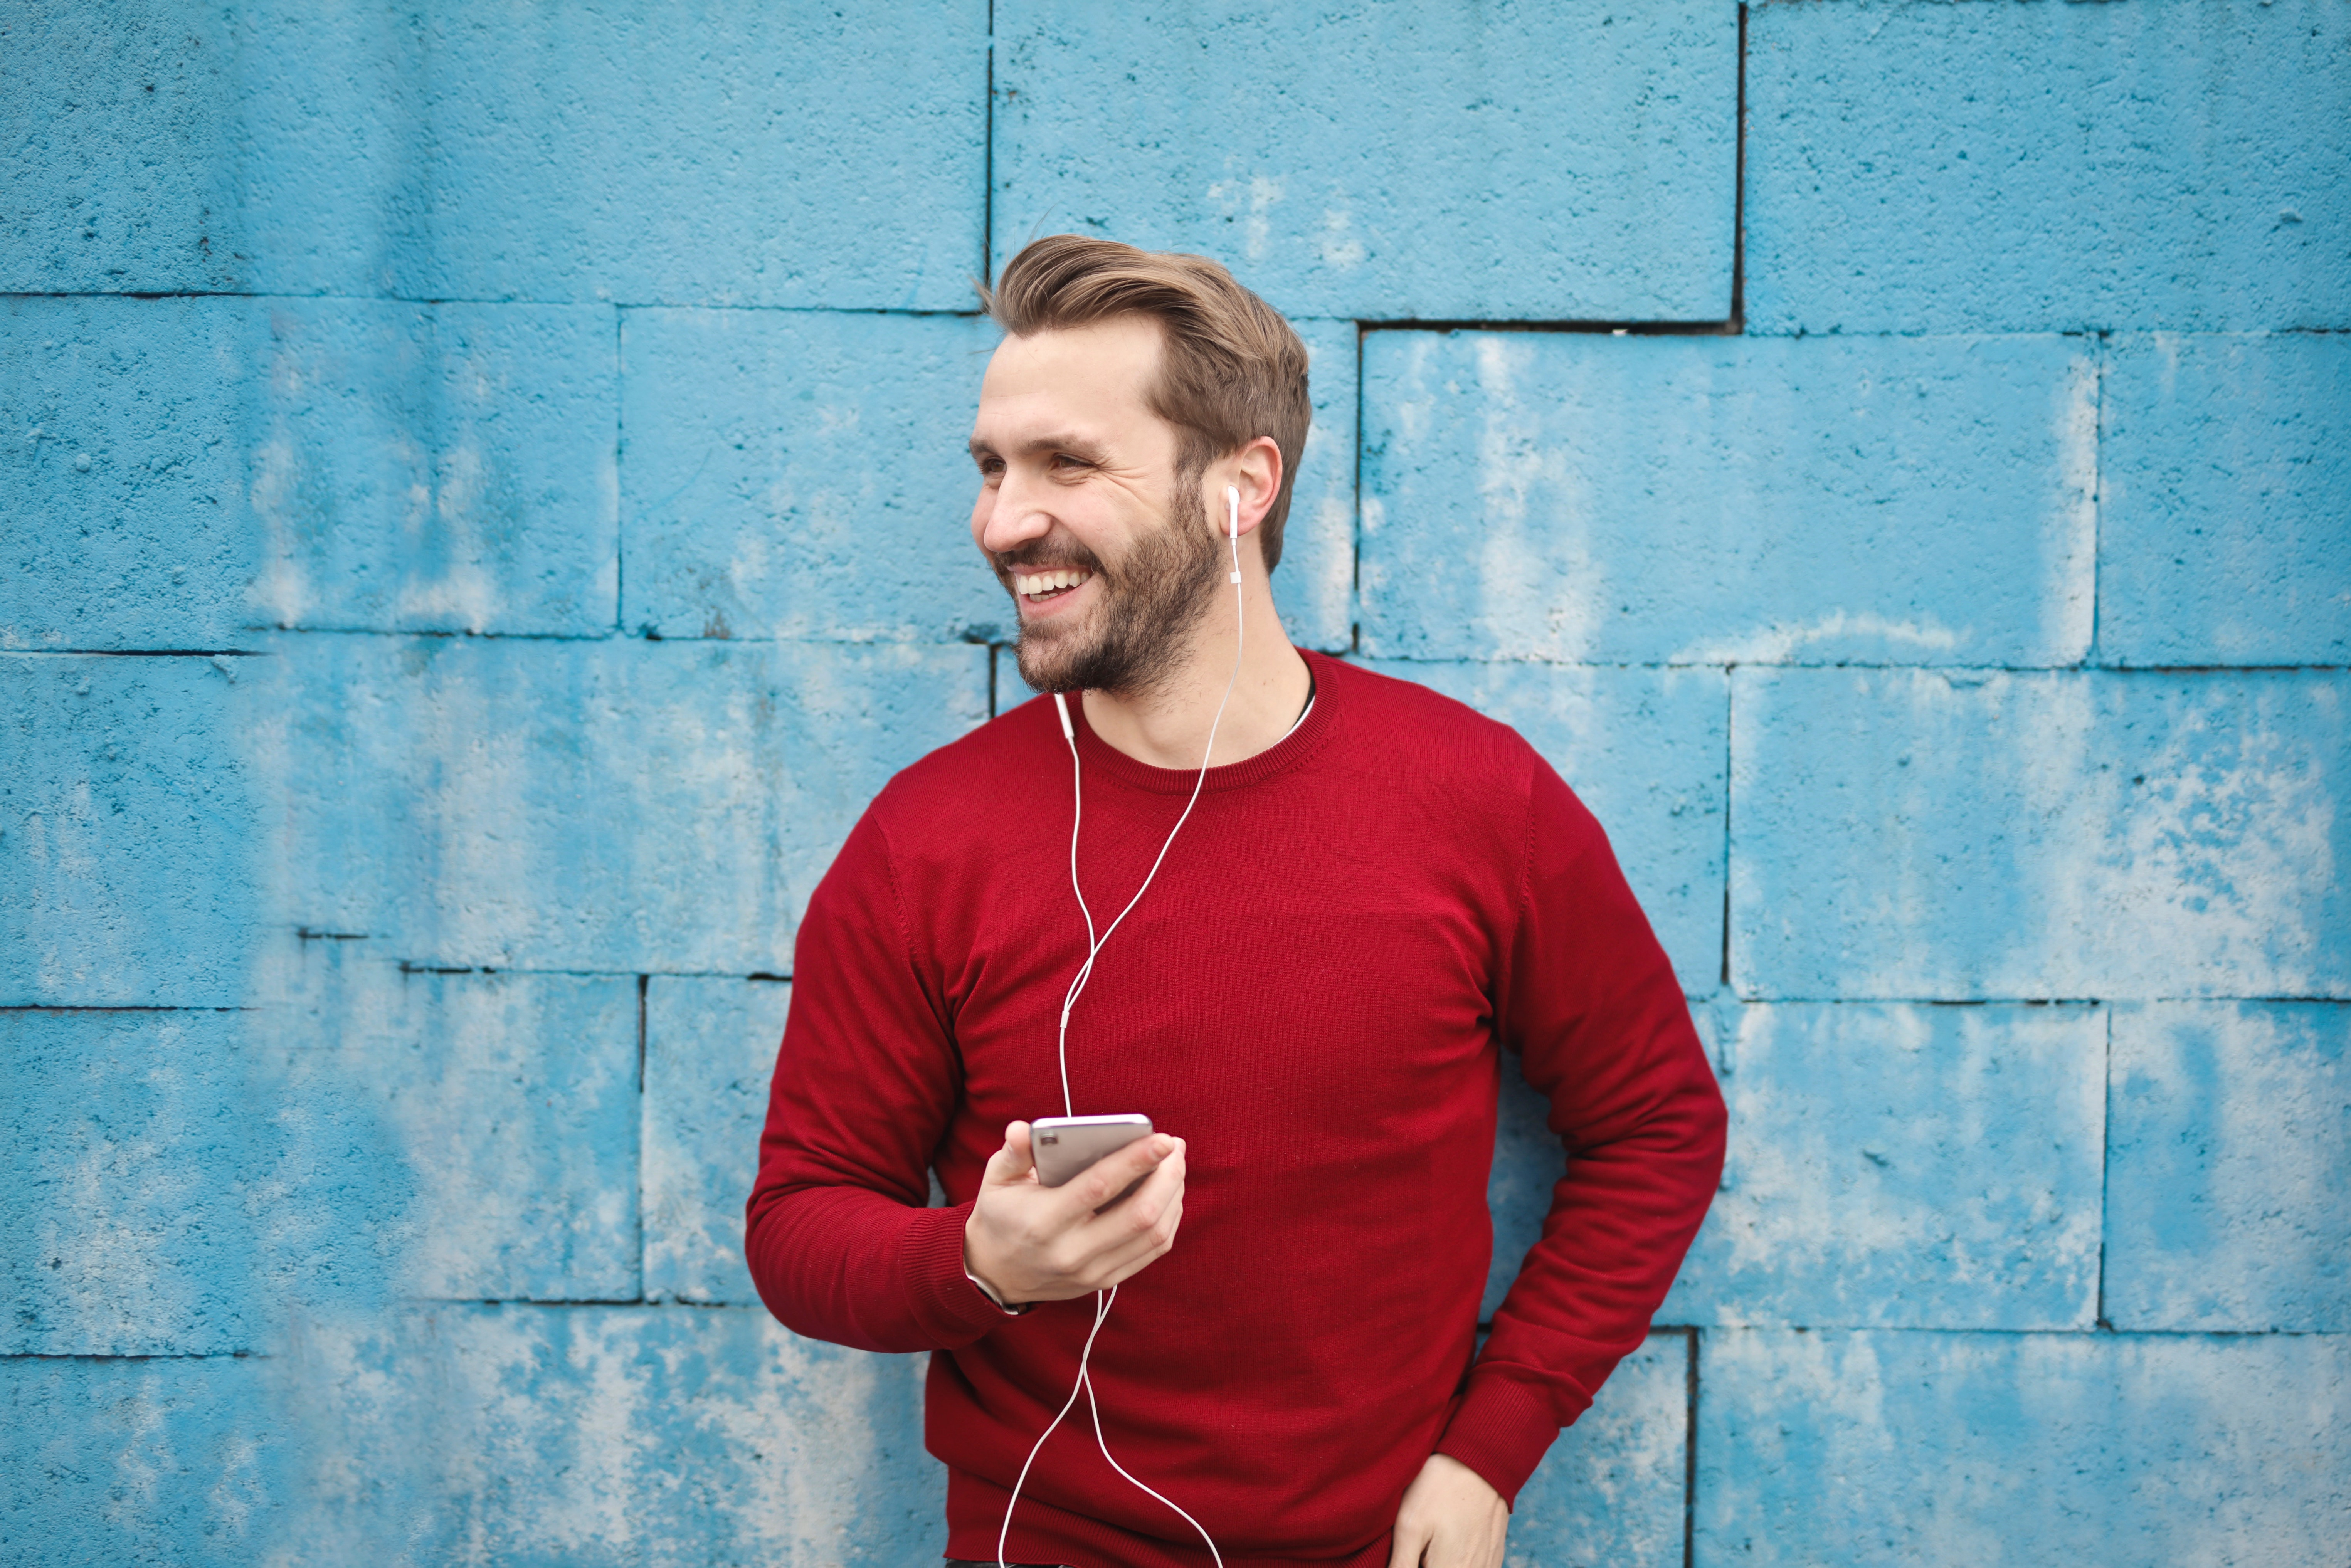 Photo of a Man Listening Music on his Phone, Adult, Man, Wall, Urban, HQ Photo